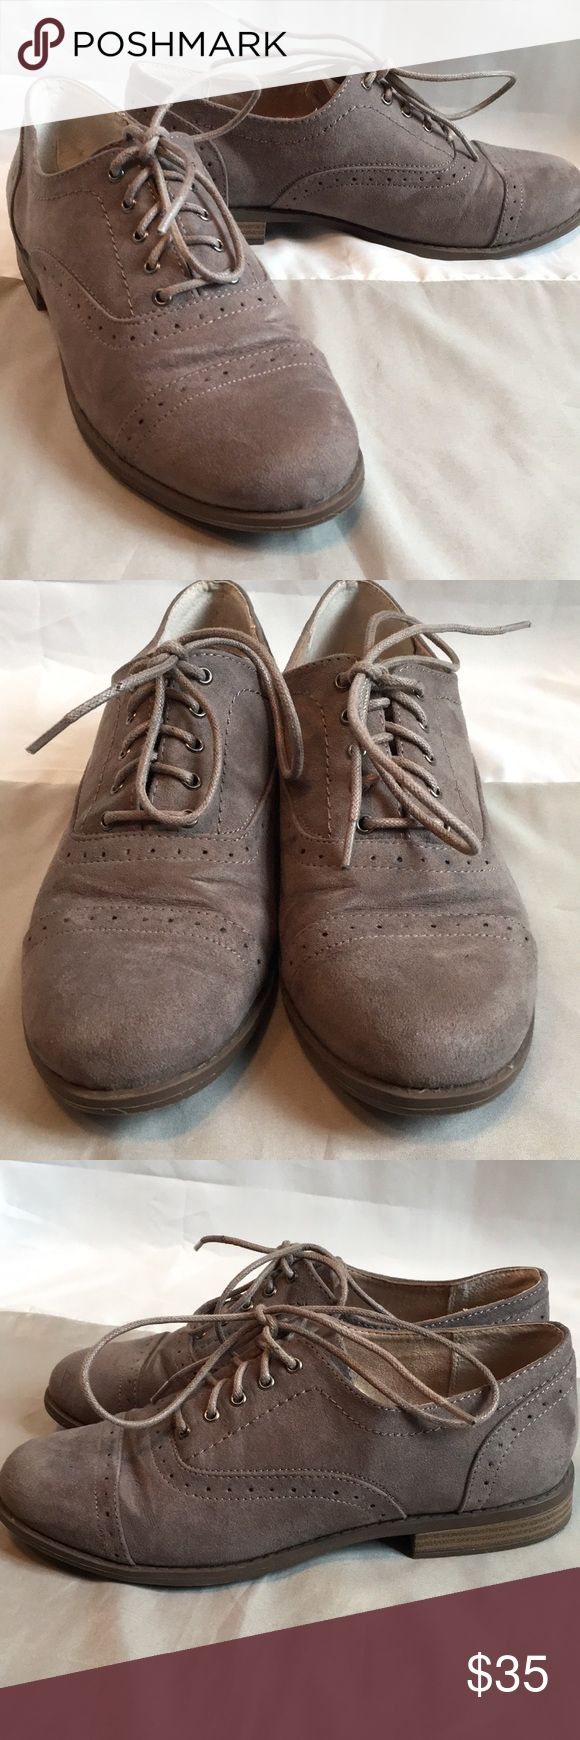 White Mountain Taupe Faux Suede Oxfords Soft taupe faux suede White Mountain oxfords. Fits like a US 6. Very minimal wear. White Mountain Shoes Flats & Loafers